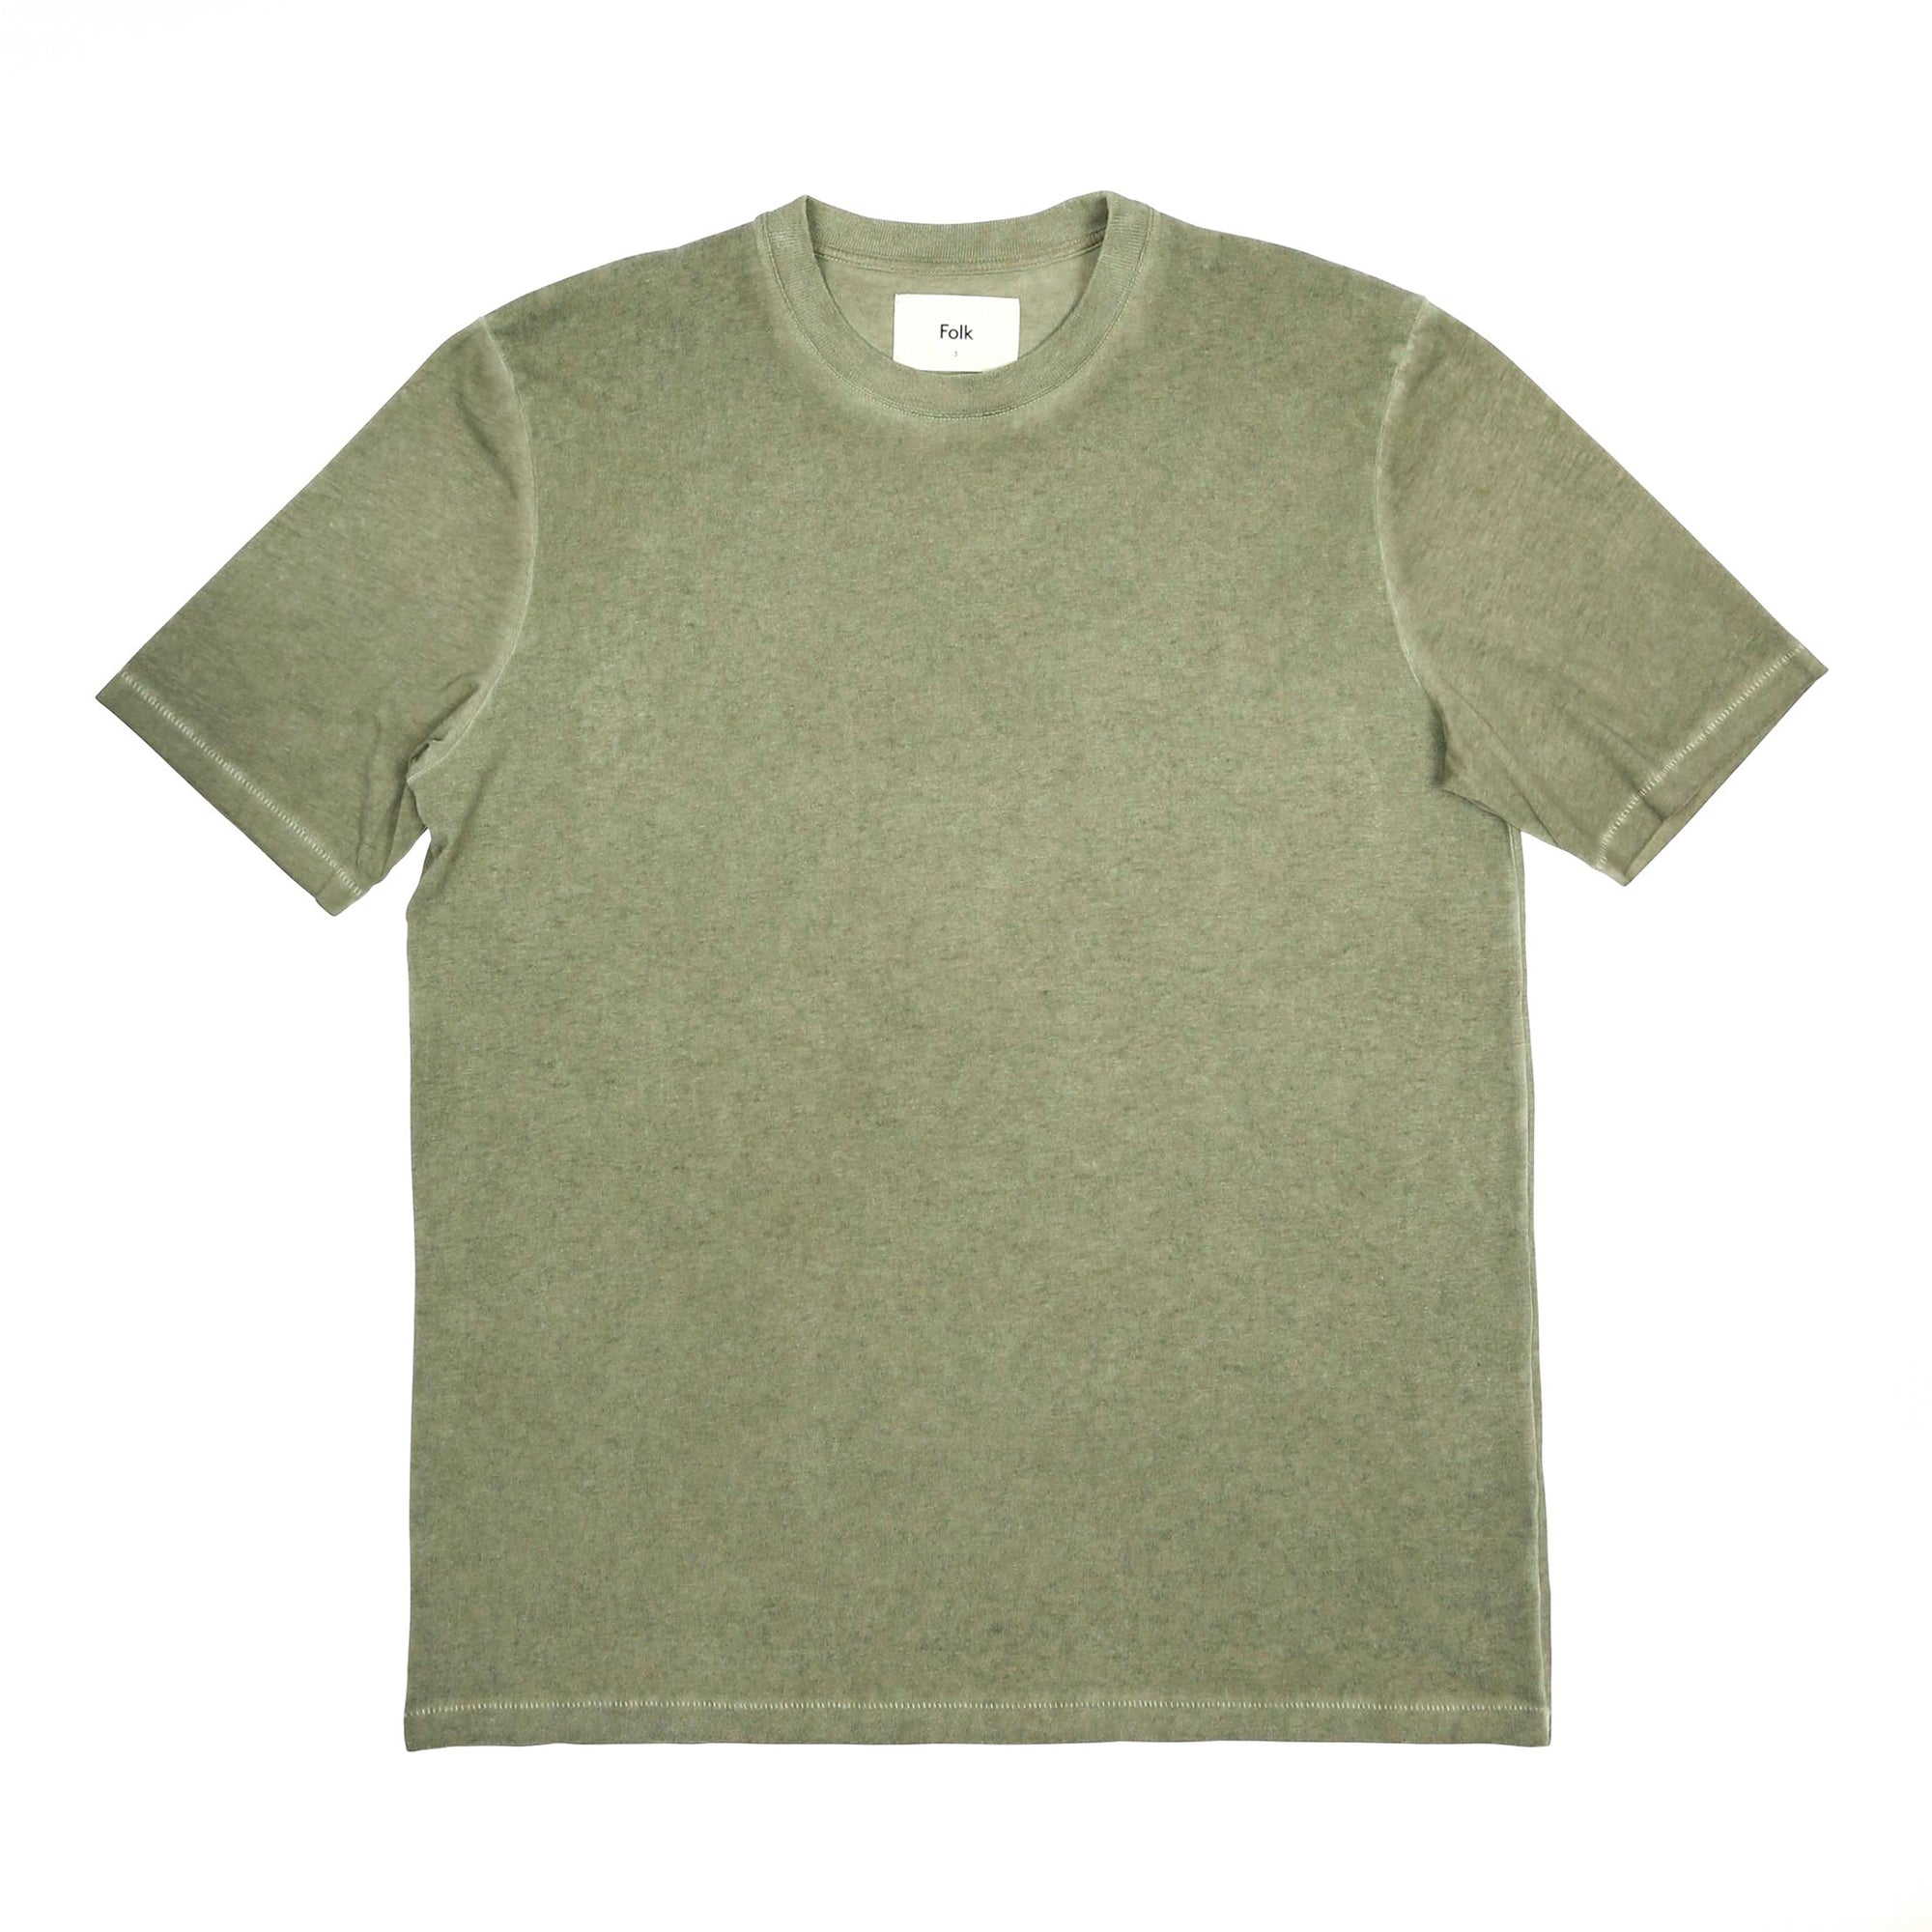 Folk Contrast Sleeve Tee: Cold Dye Olive - The Union Project